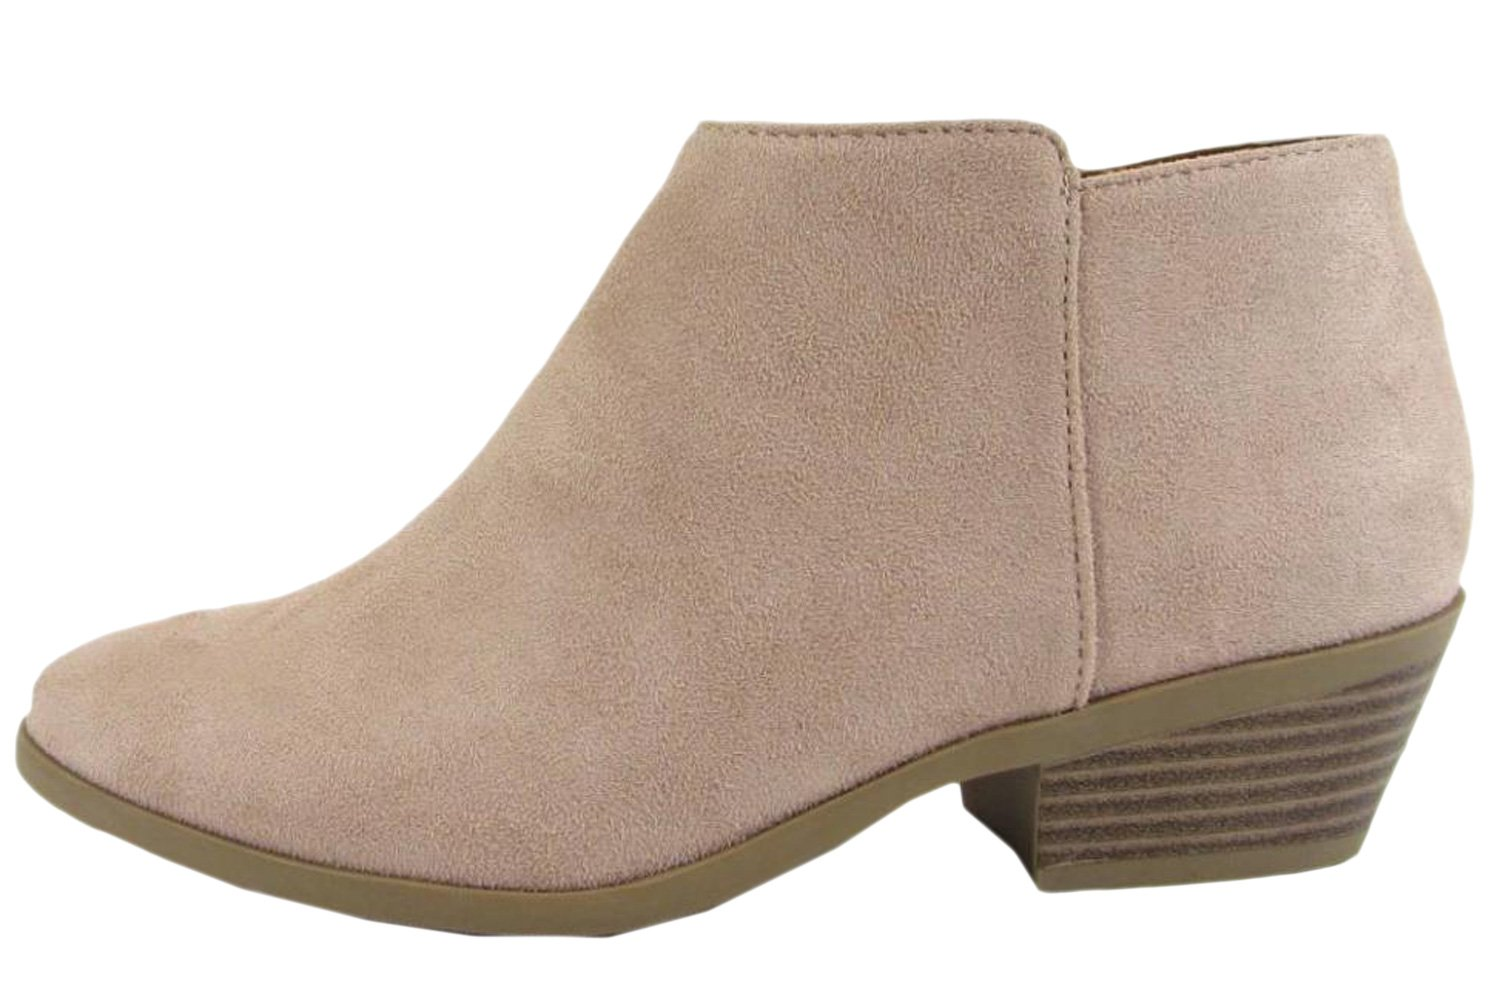 Soda Women's Round Toe Faux Suede Stacked Heel Western Ankle Bootie,7 B(M) US,Dusty Mauve